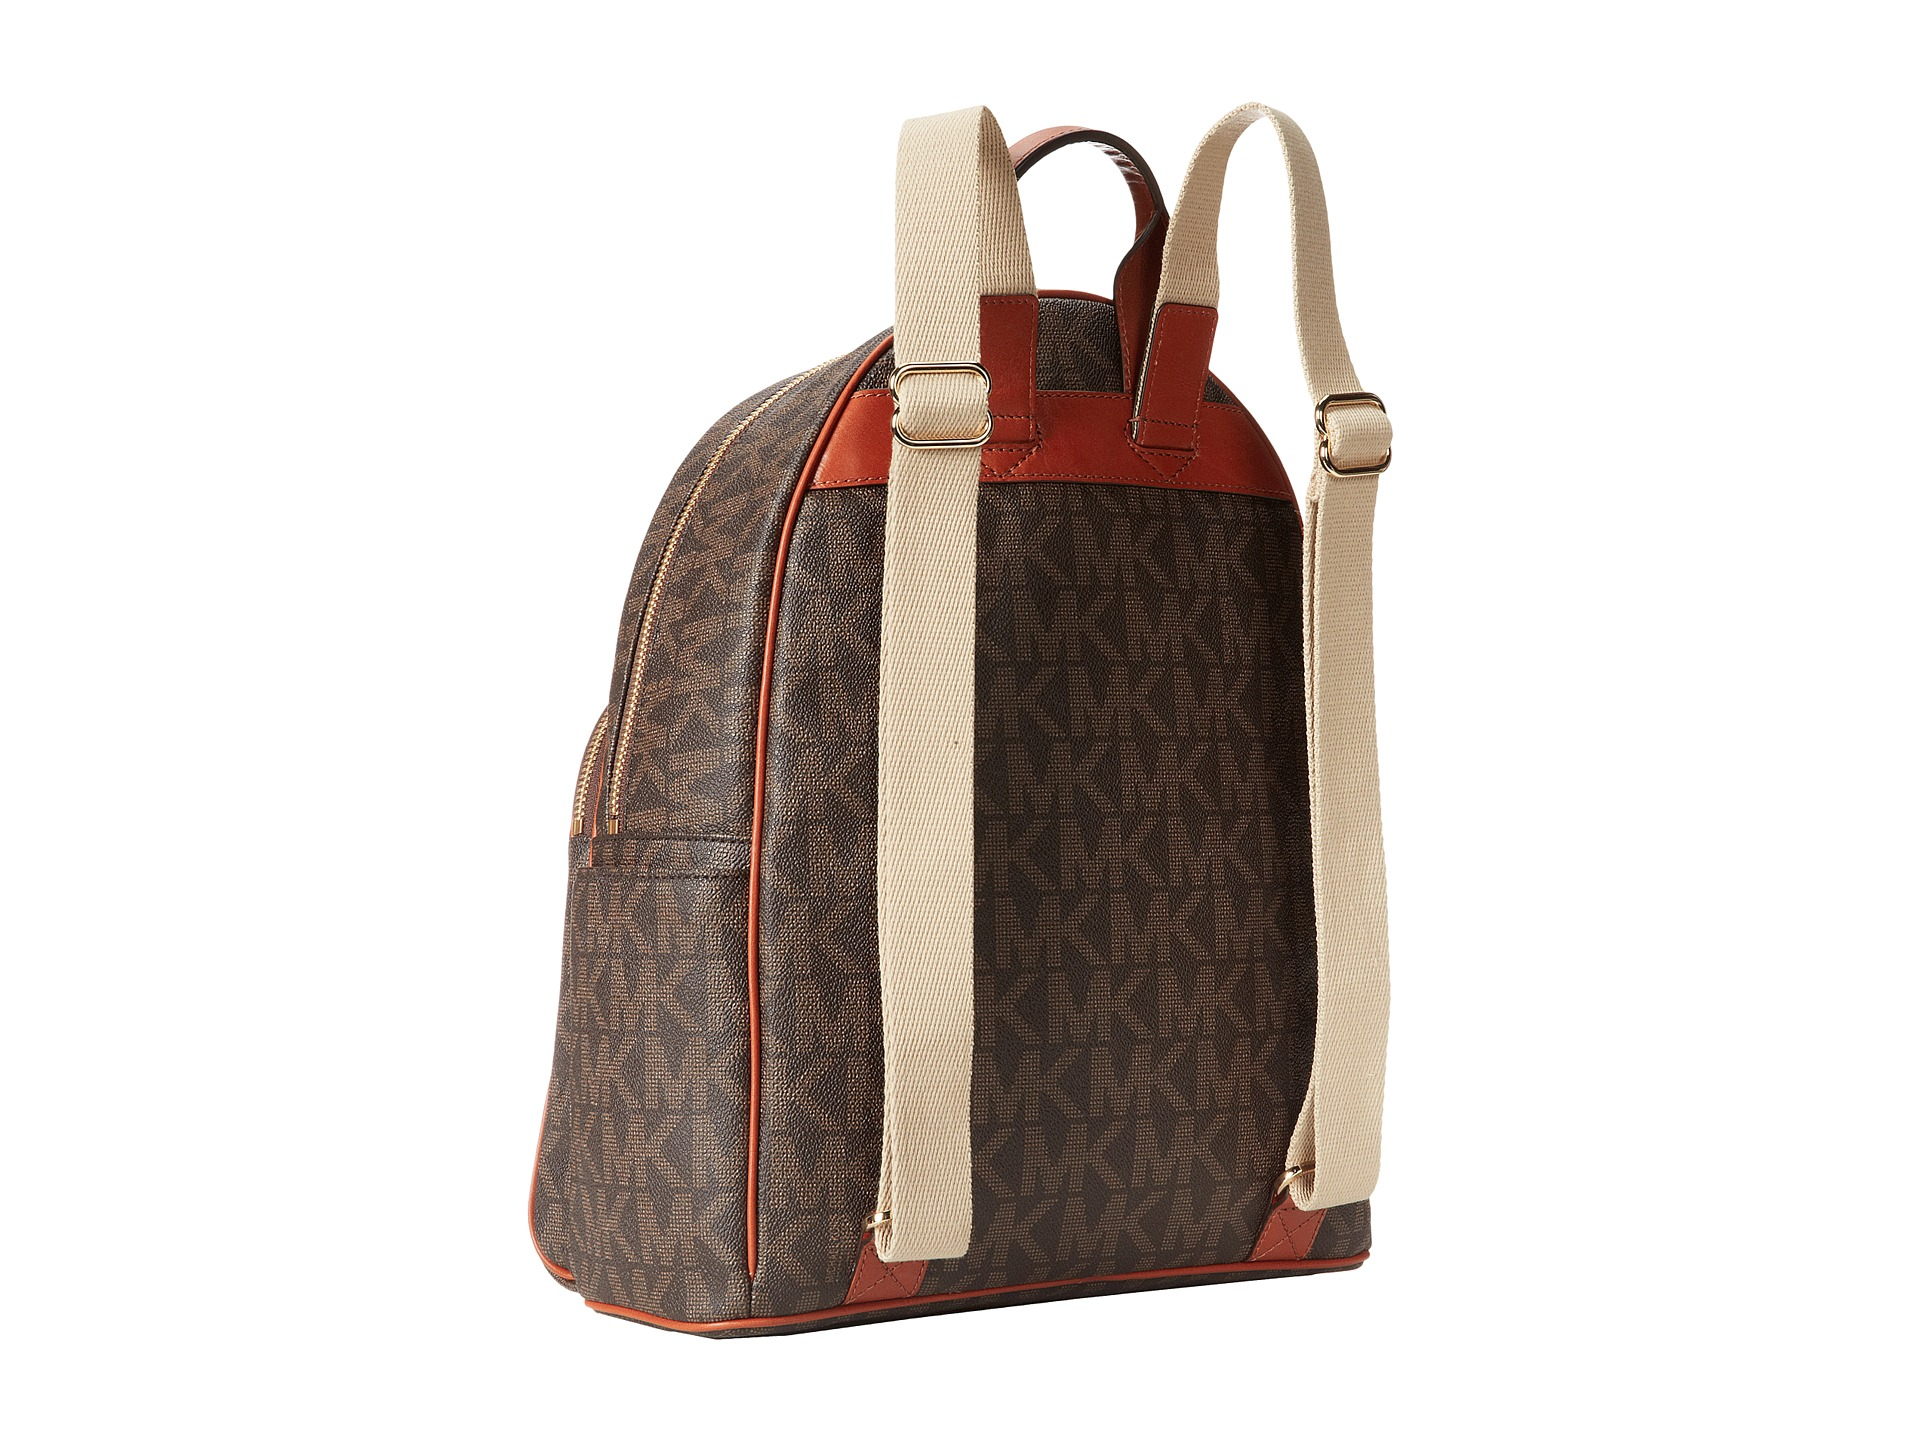 3e0381cf1e32 ... get lyst michael michael kors jet set item large back pack in brown  fa8a3 716f9